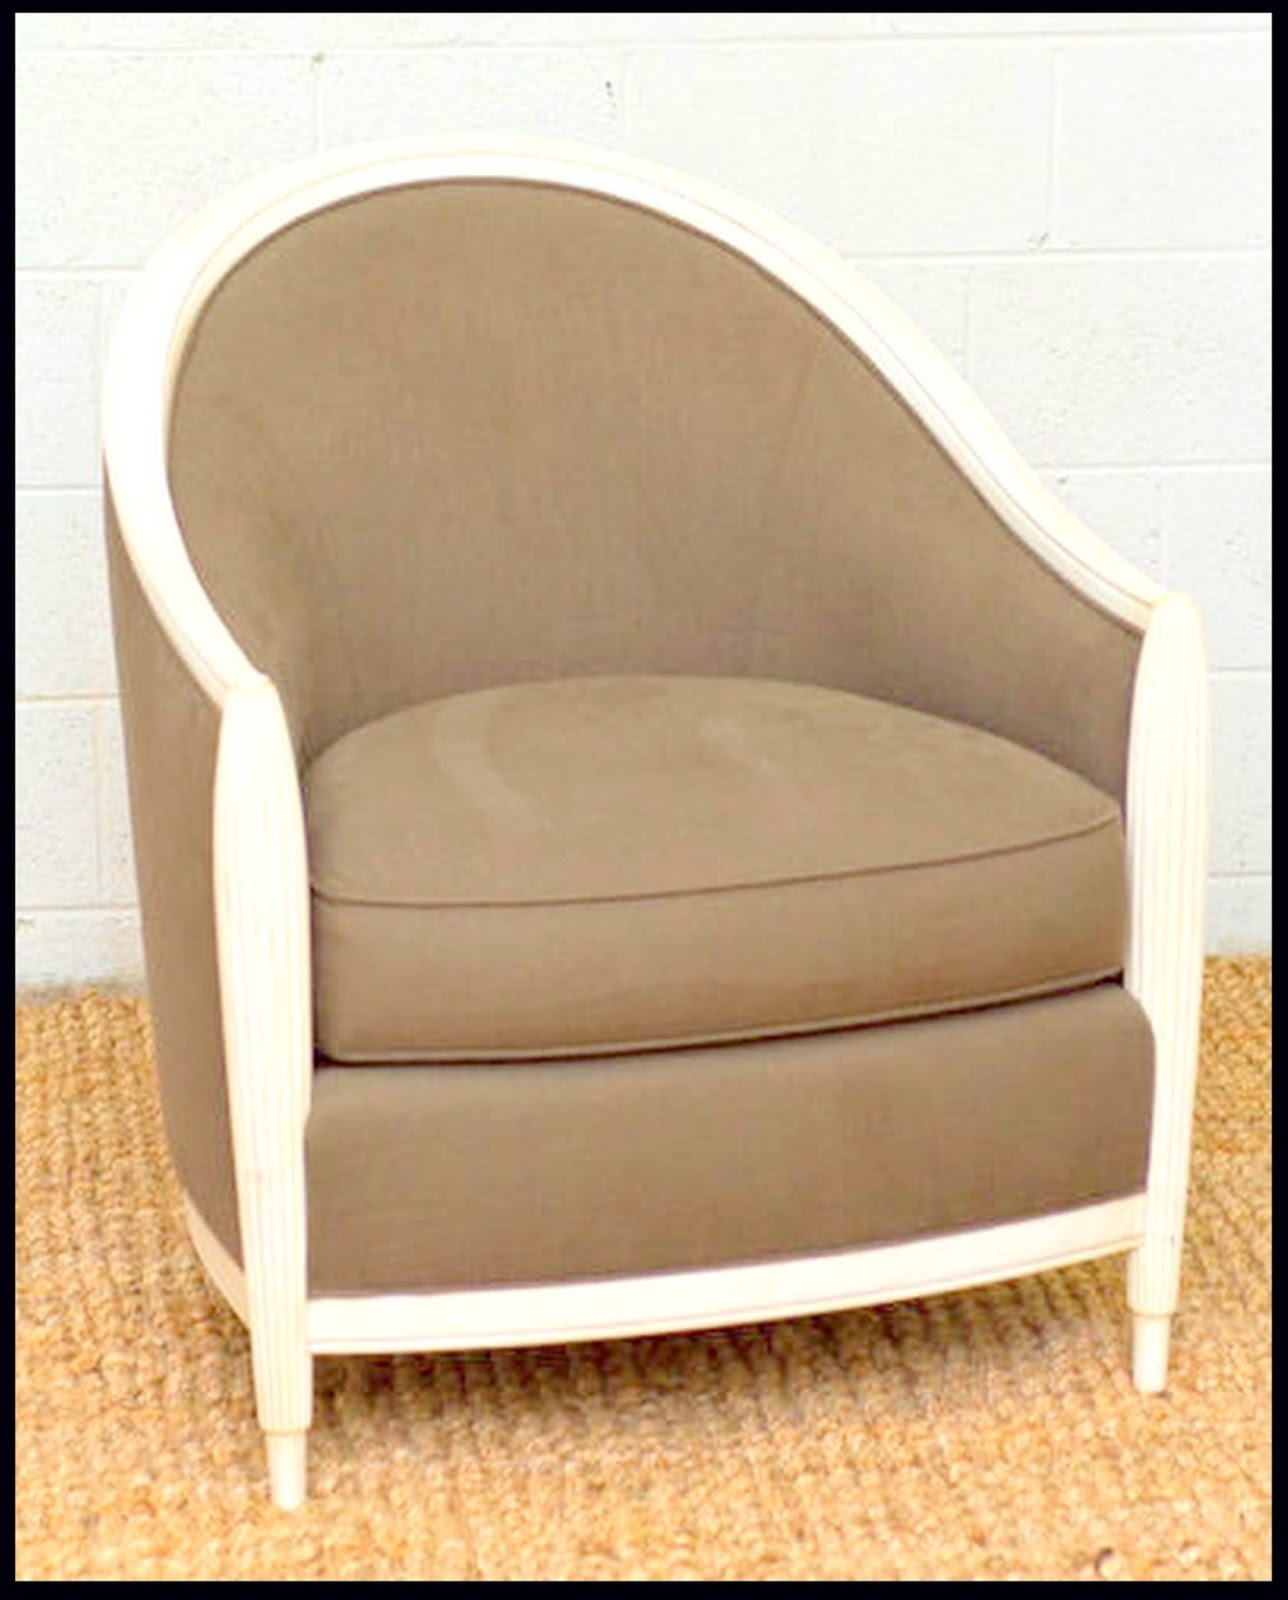 Thomasville Bogart Luxe Collection Ingrid Upholstered Barrel Chair, US  $799. Located In Trinity, North Caroline. Please Click On Link For More  Information.